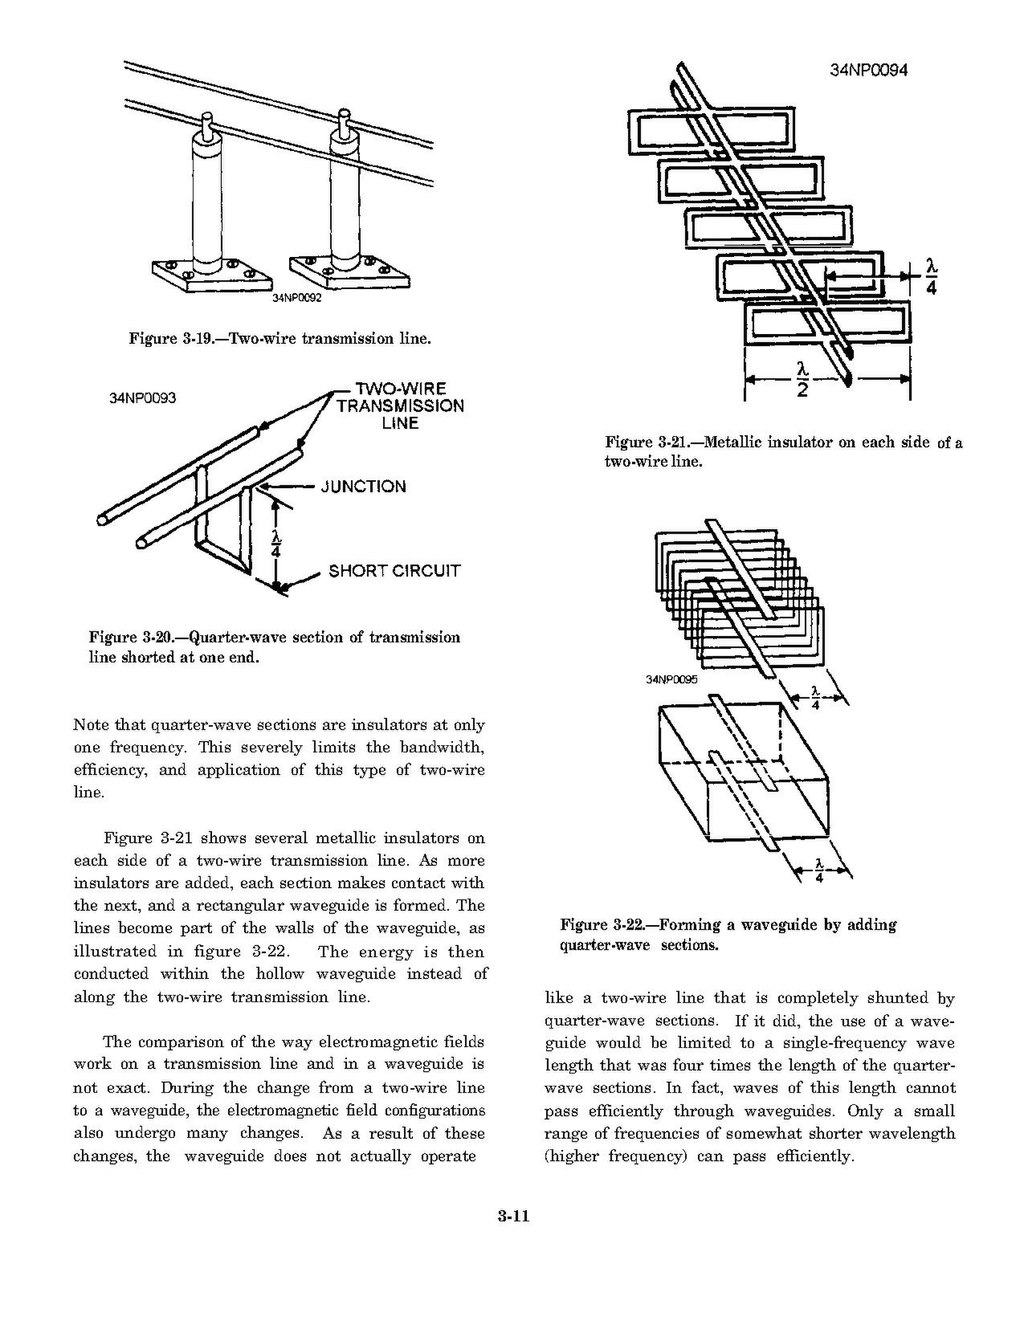 hight resolution of page electronics technician volume 7 antennas and wave propagation navedtra 14092 pdf 69 wikisource the free online library